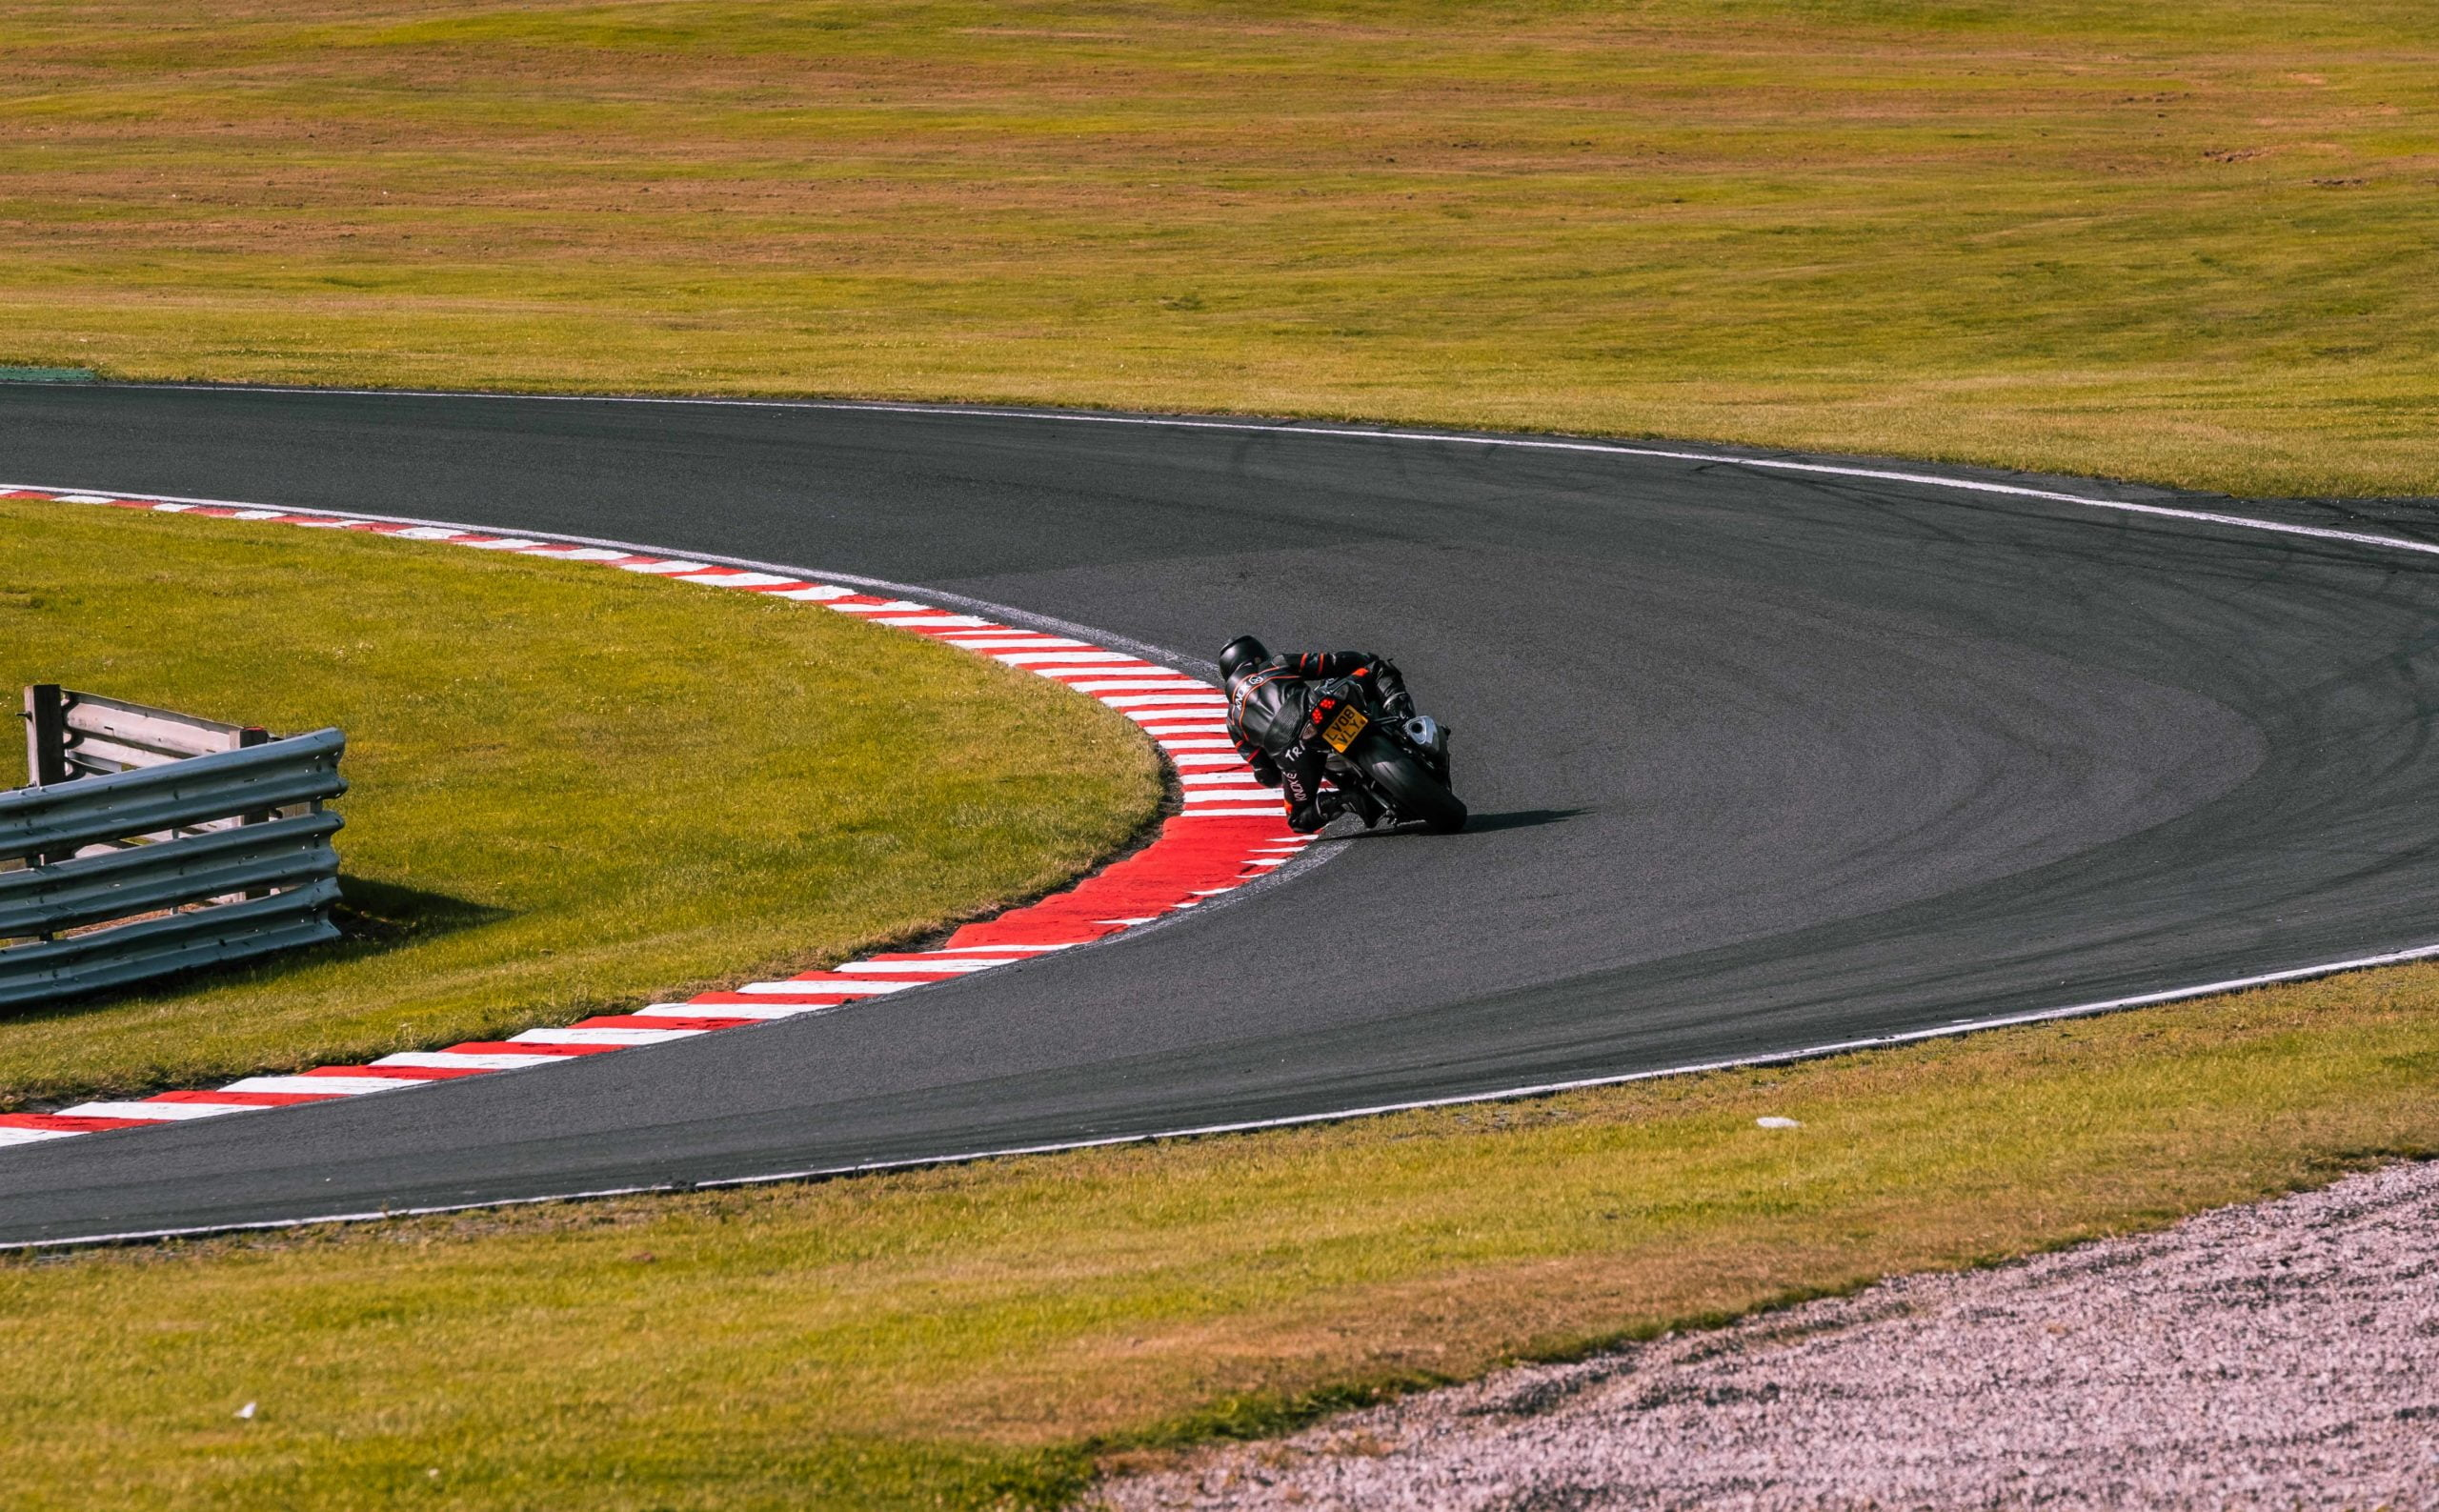 Best Motorcycle Gear for riding on Track